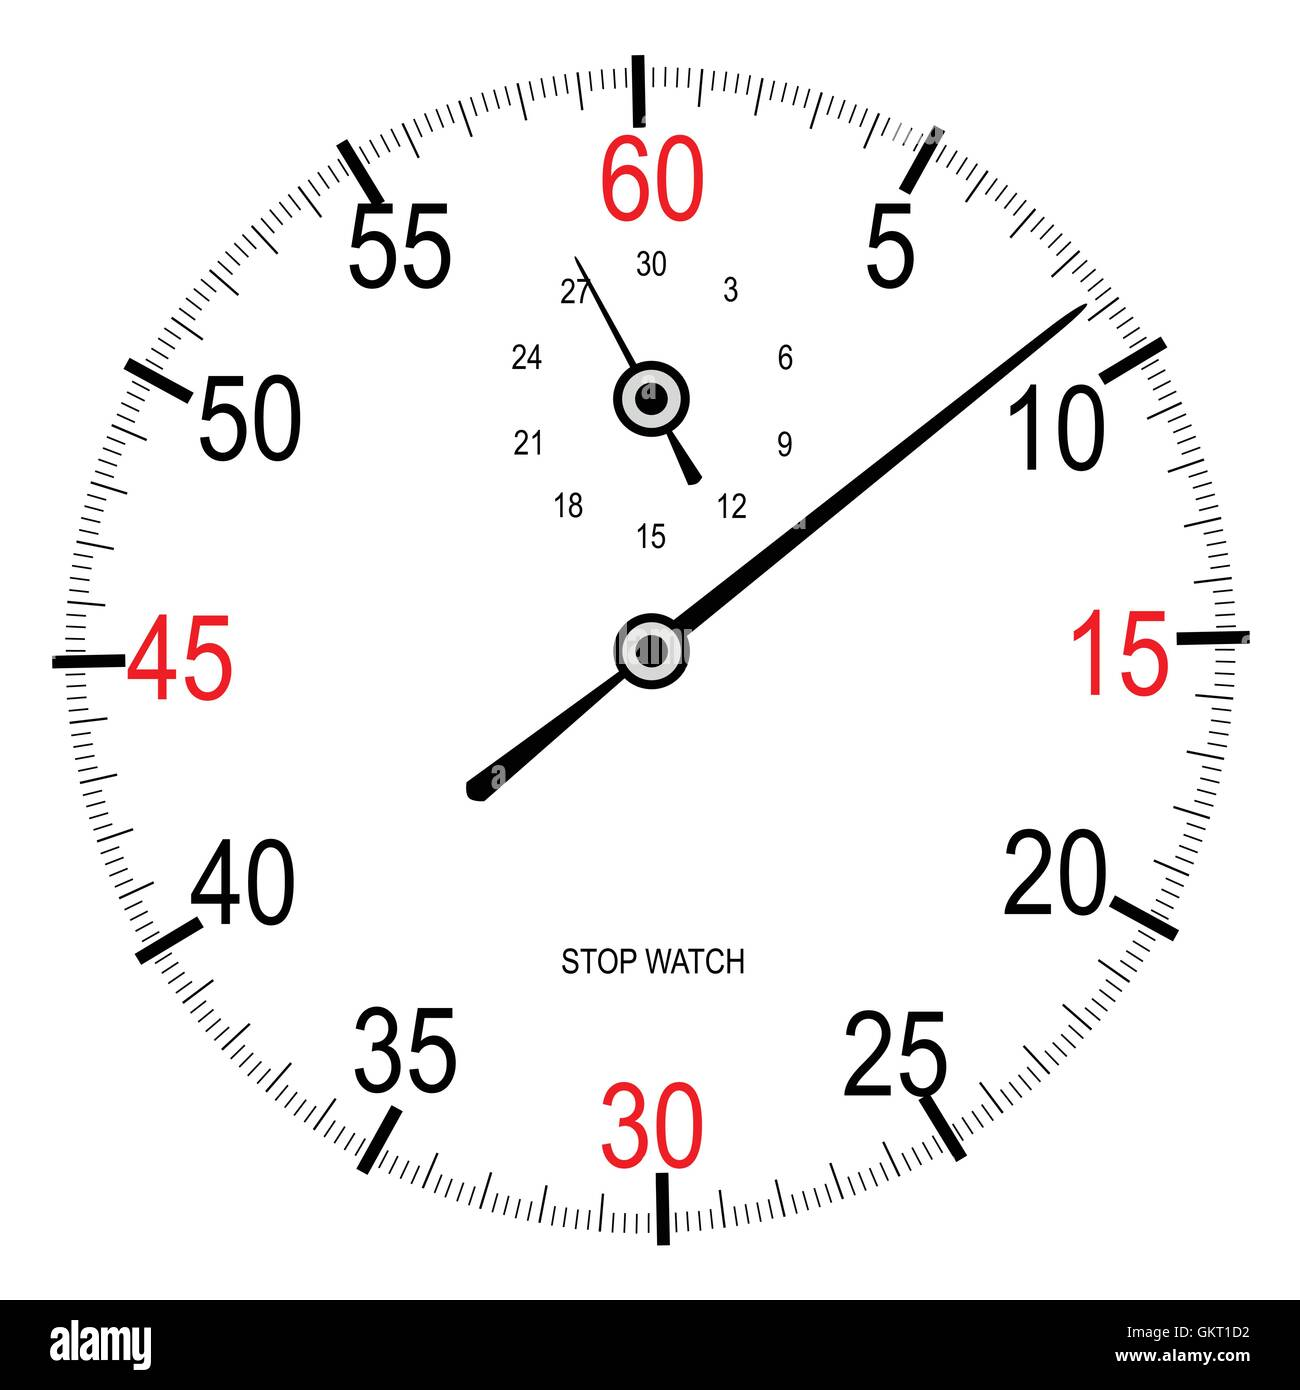 Stop Watch Face - Stock Image